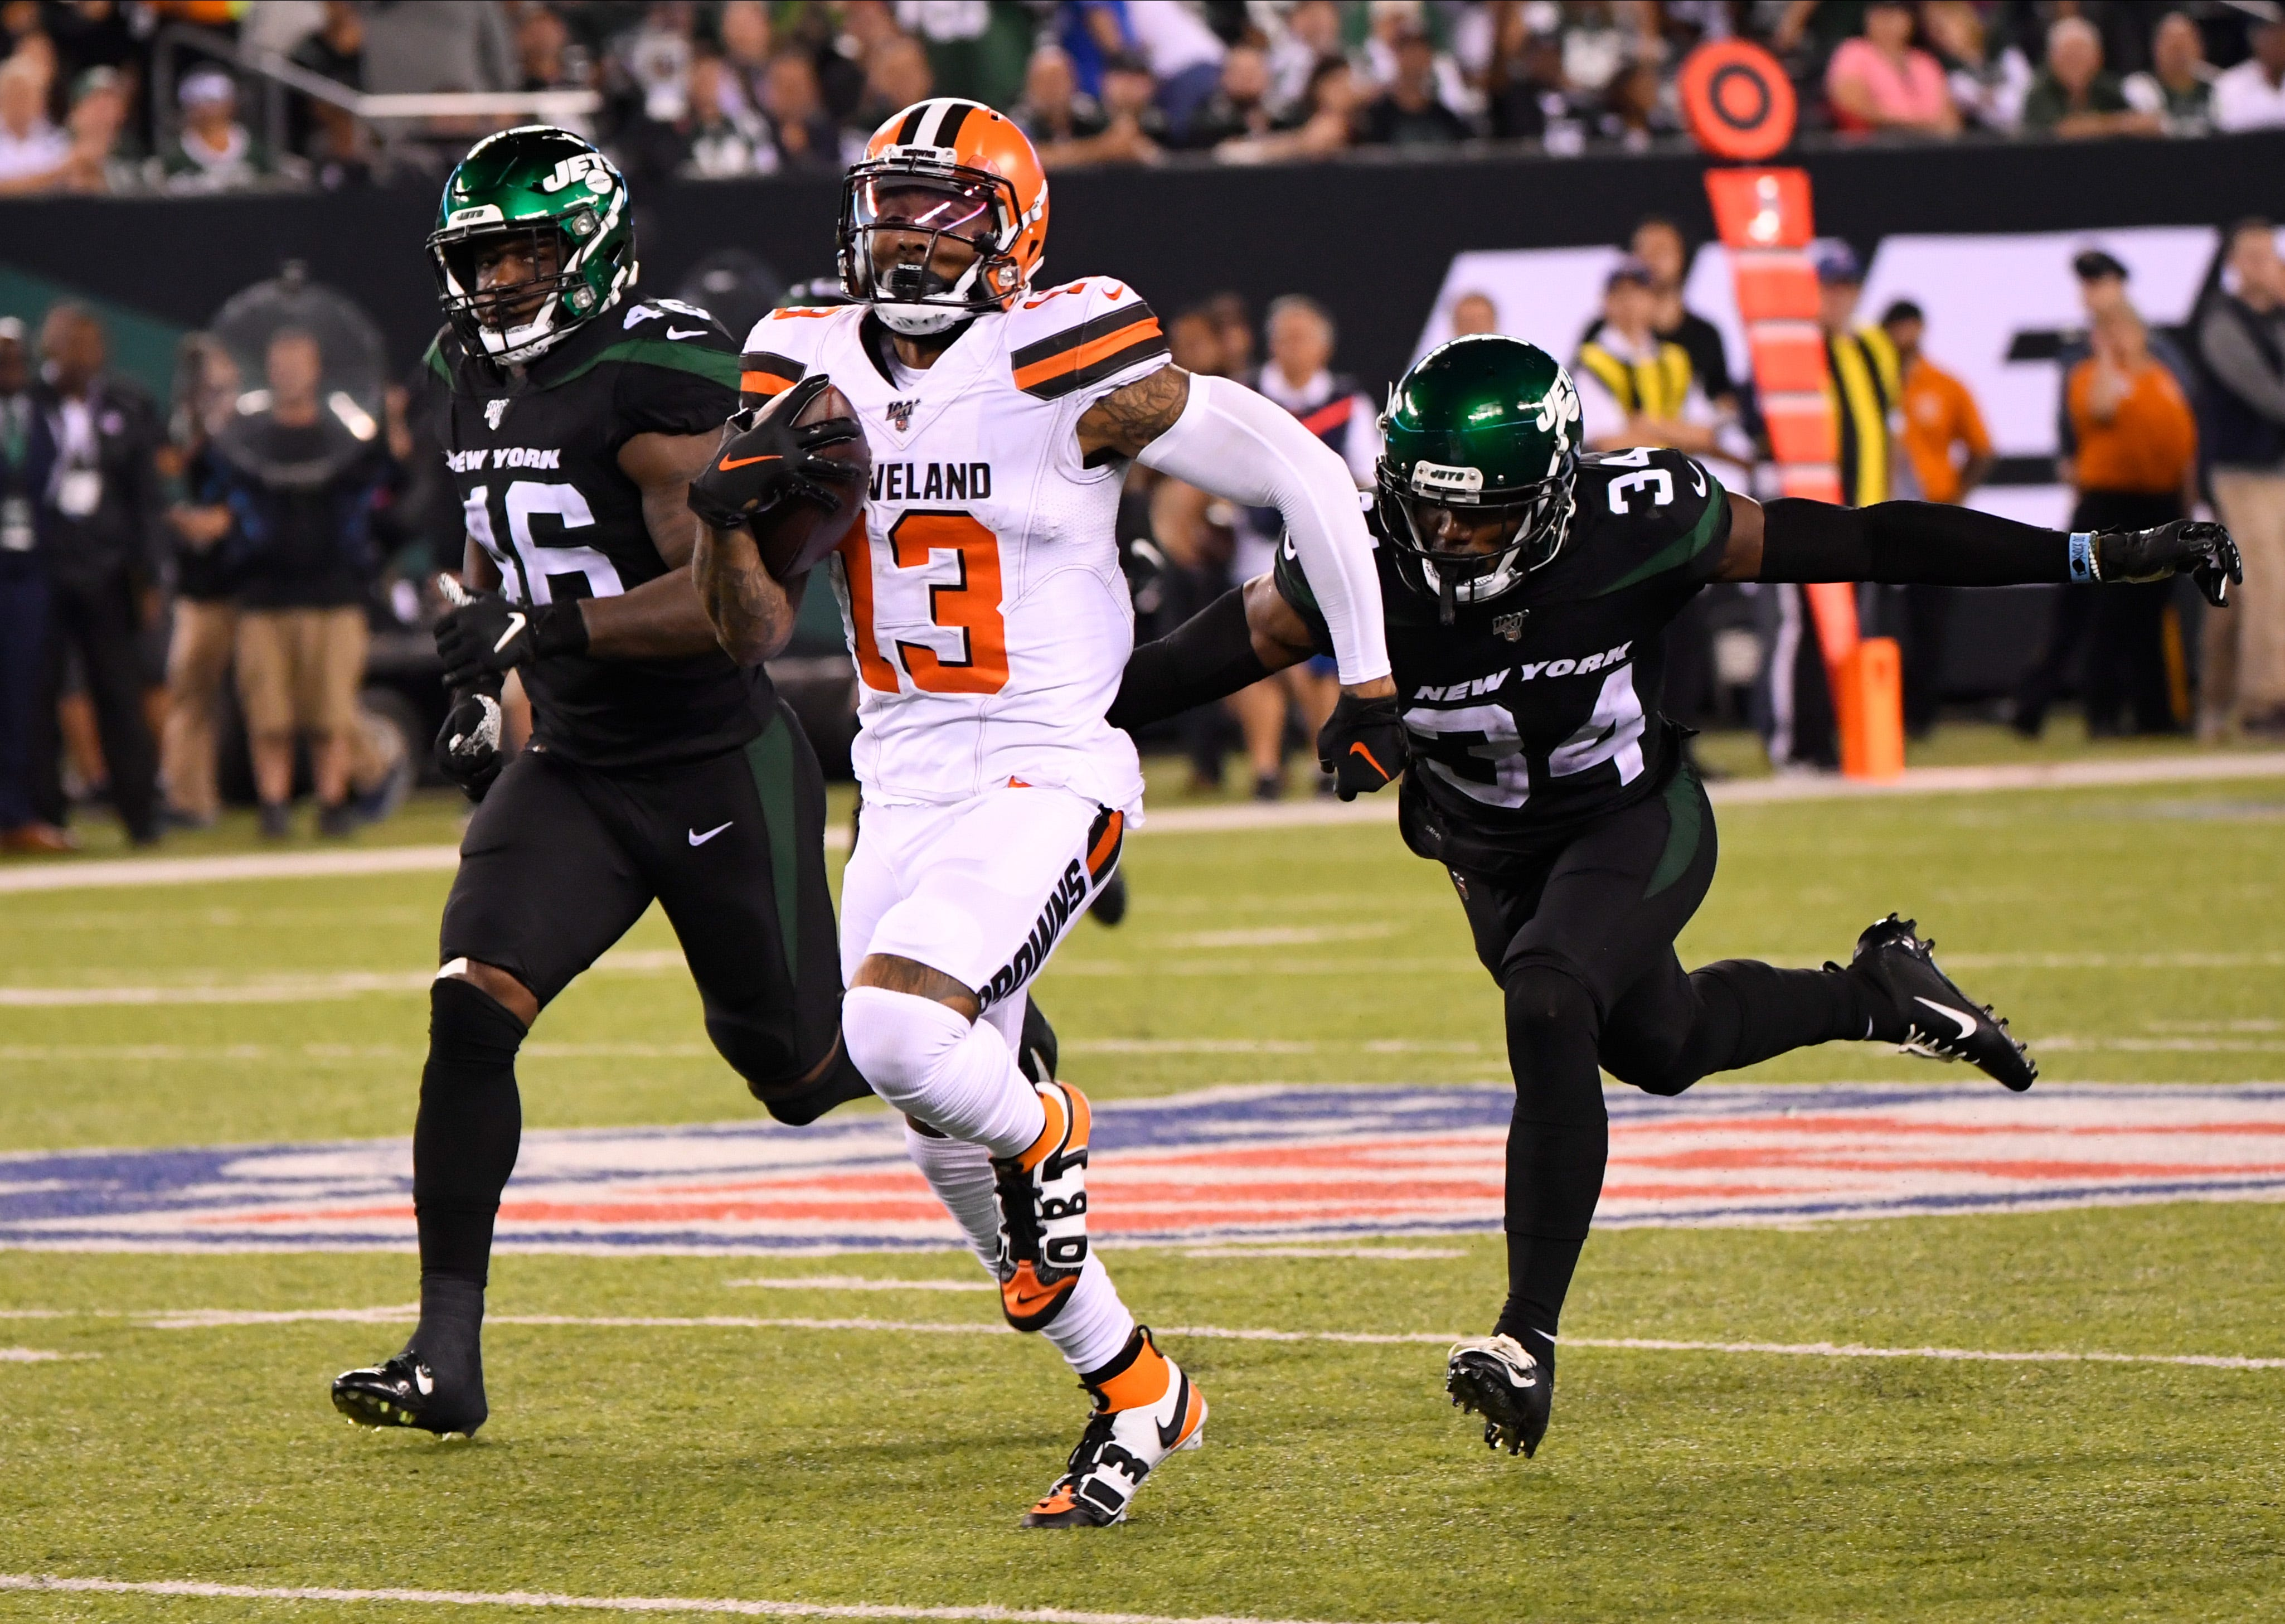 Odell Beckham Jr. has big game as Cleveland Browns topple undermanned New York Jets thumbnail